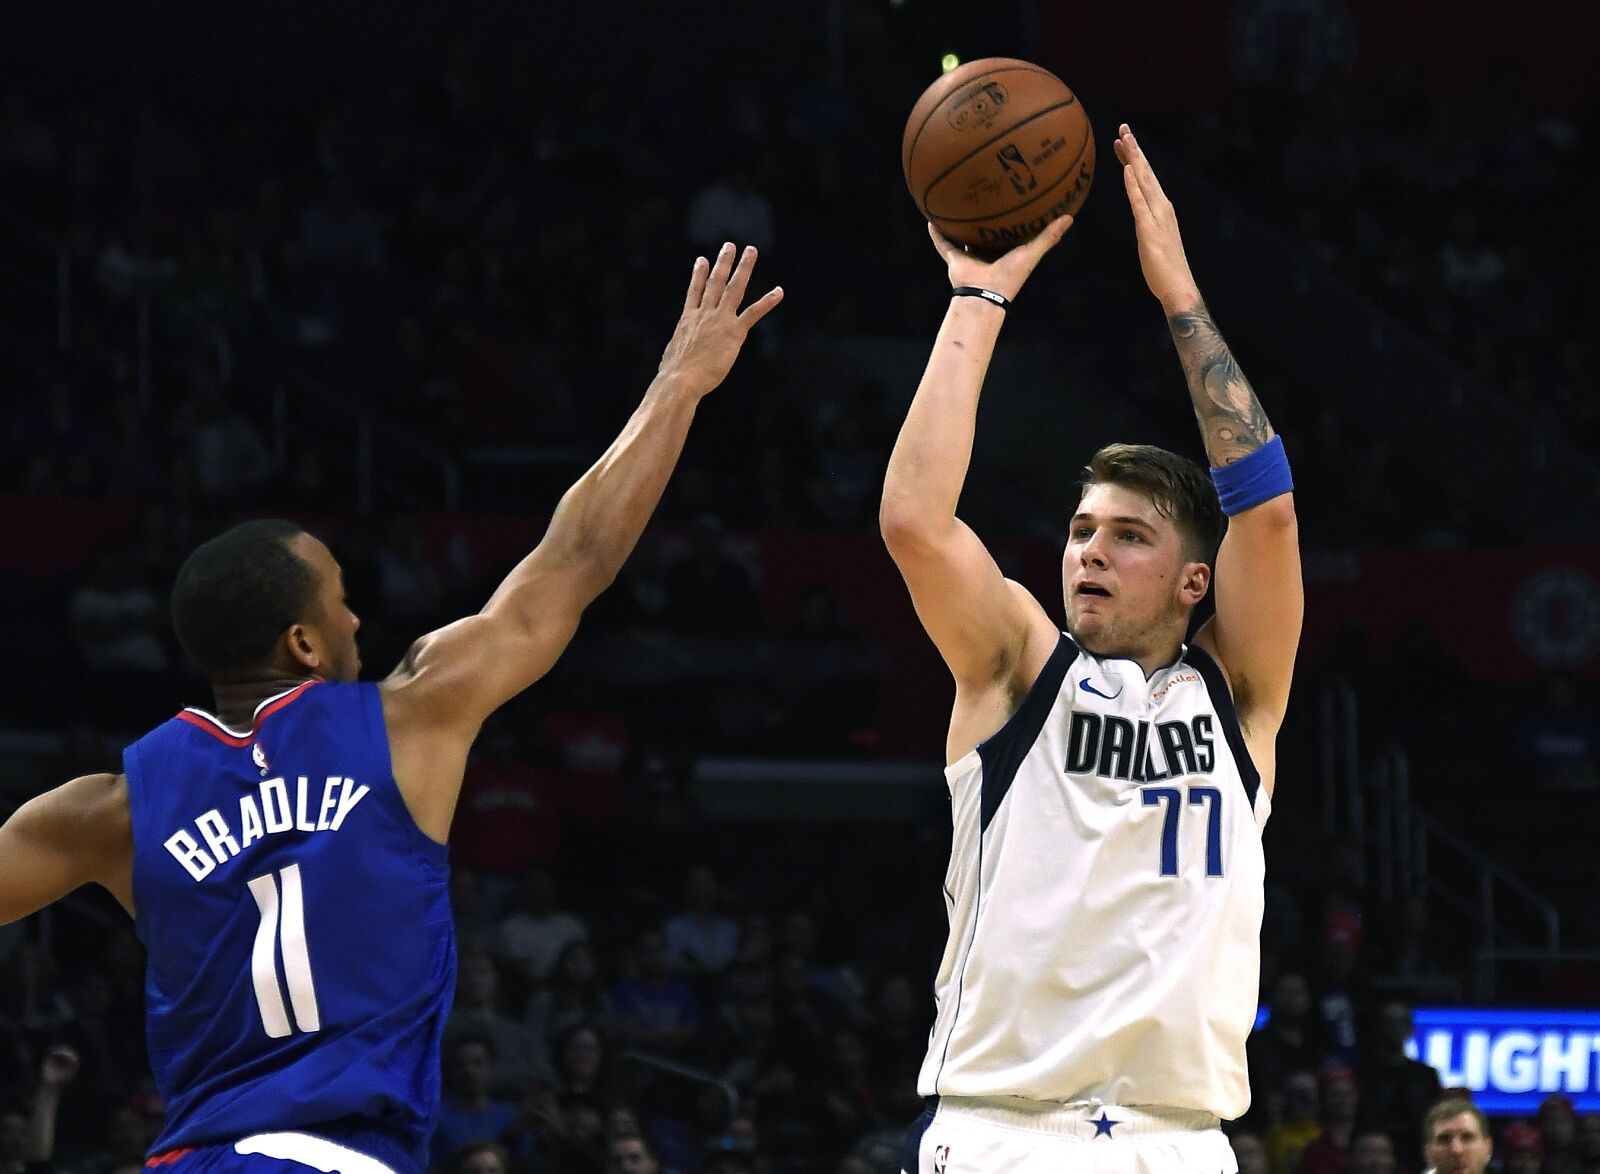 The Whiteboard: If Luka Doncic is an All-Star, he'll join an exclusive club